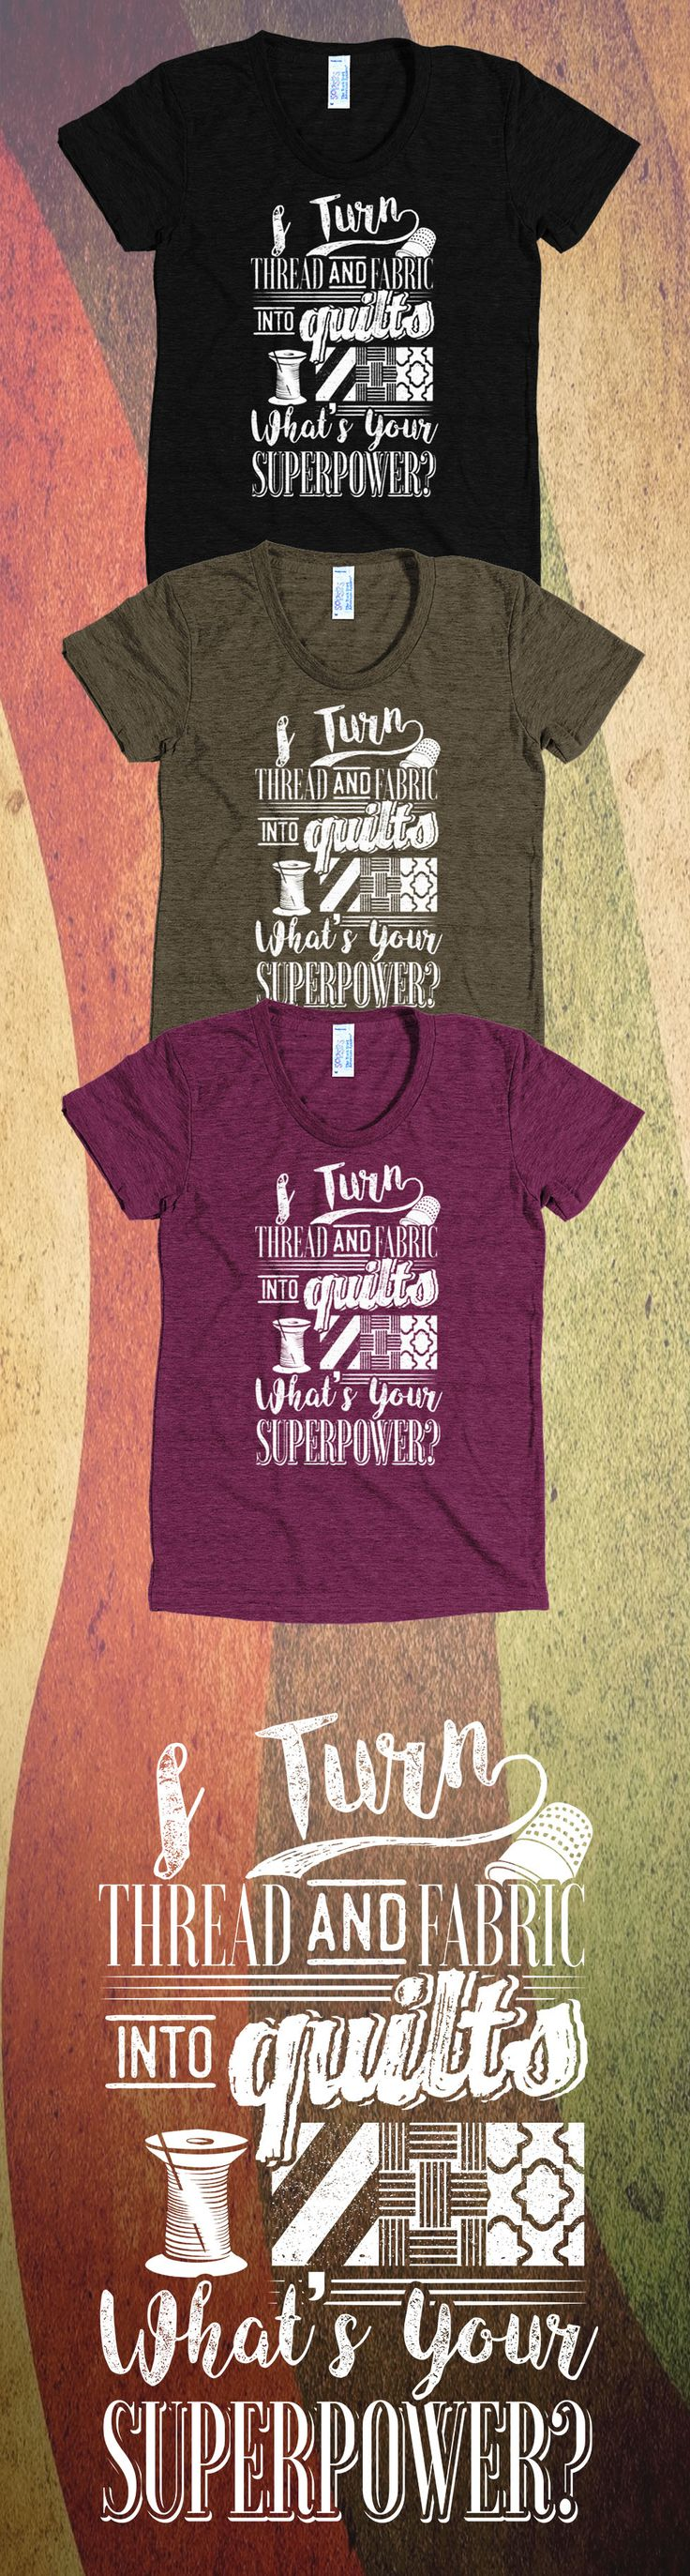 Do You Love Quilting?! Check out this awesome Quilt t-shirt you will not find anywhere else. Not sold in stores and only 2 days left for free shipping! Grab yours or gift it to a friend, you will both love it